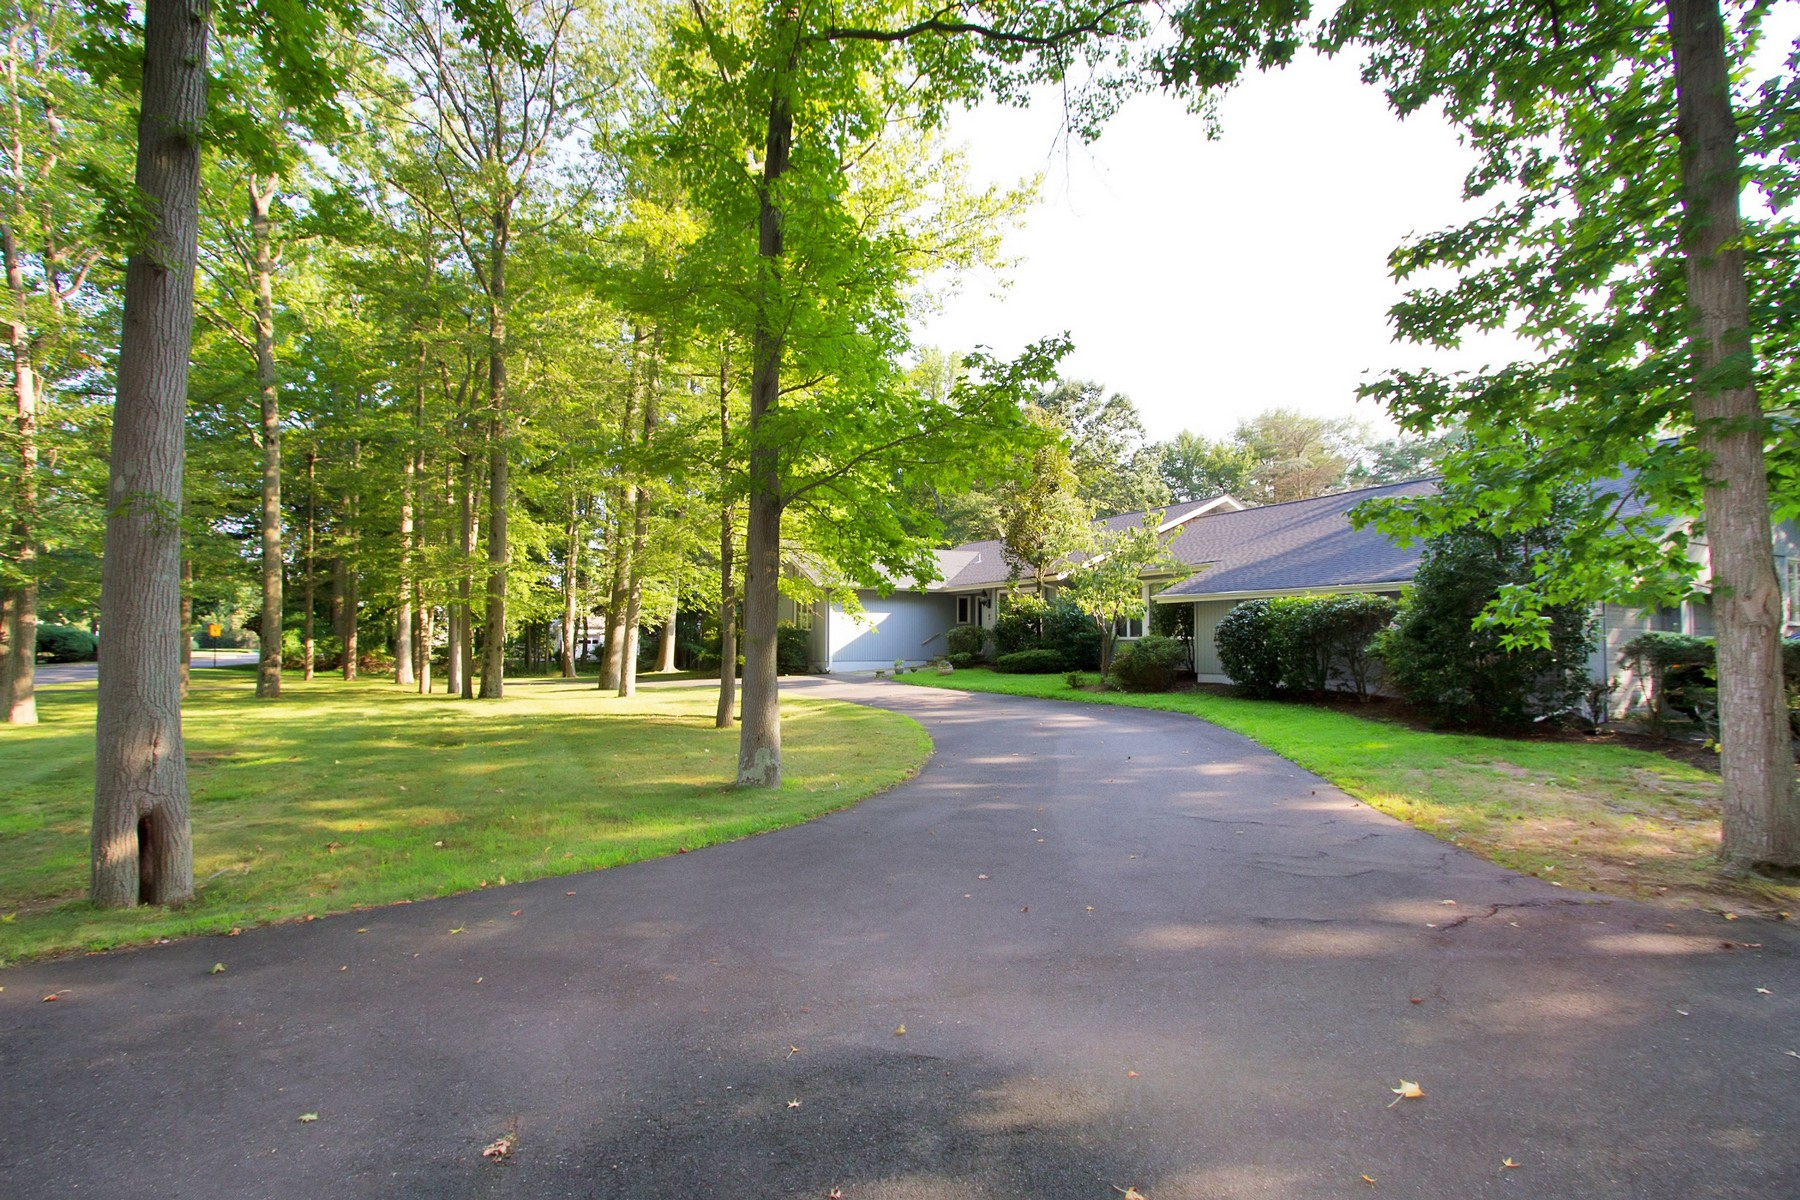 Single Family Home for Sale at Easy living in this sprawling ranch home 2 River Edge Dr Rumson, New Jersey, 07760 United States